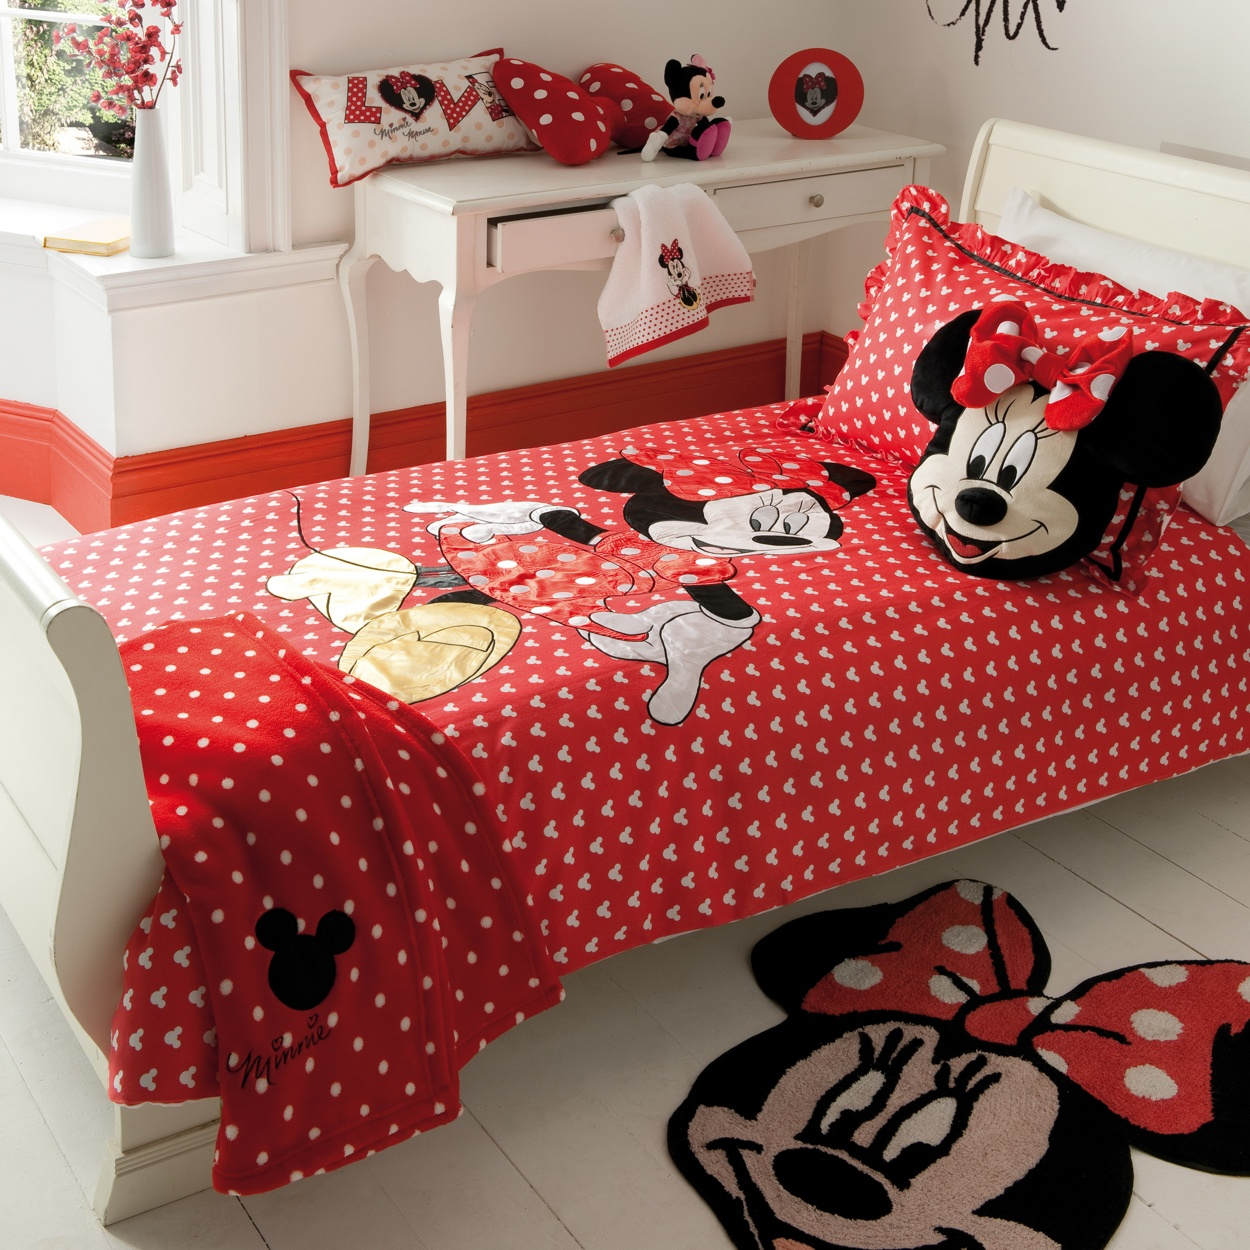 Children Bedroom Mickey Mouse Interior Theme (View 2 of 8)